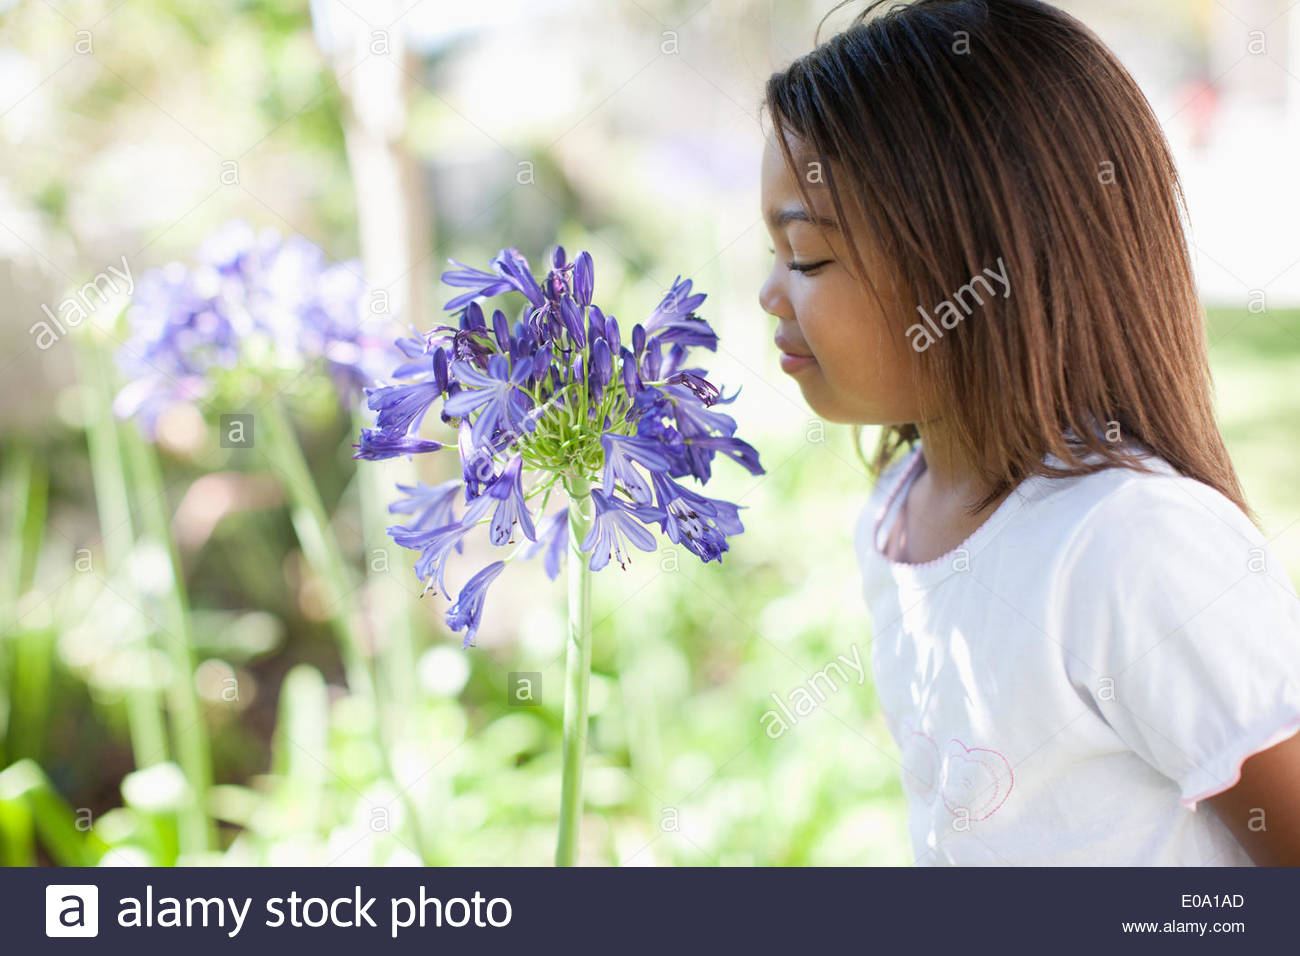 Girl smelling flower outdoors, portrait - Stock Image